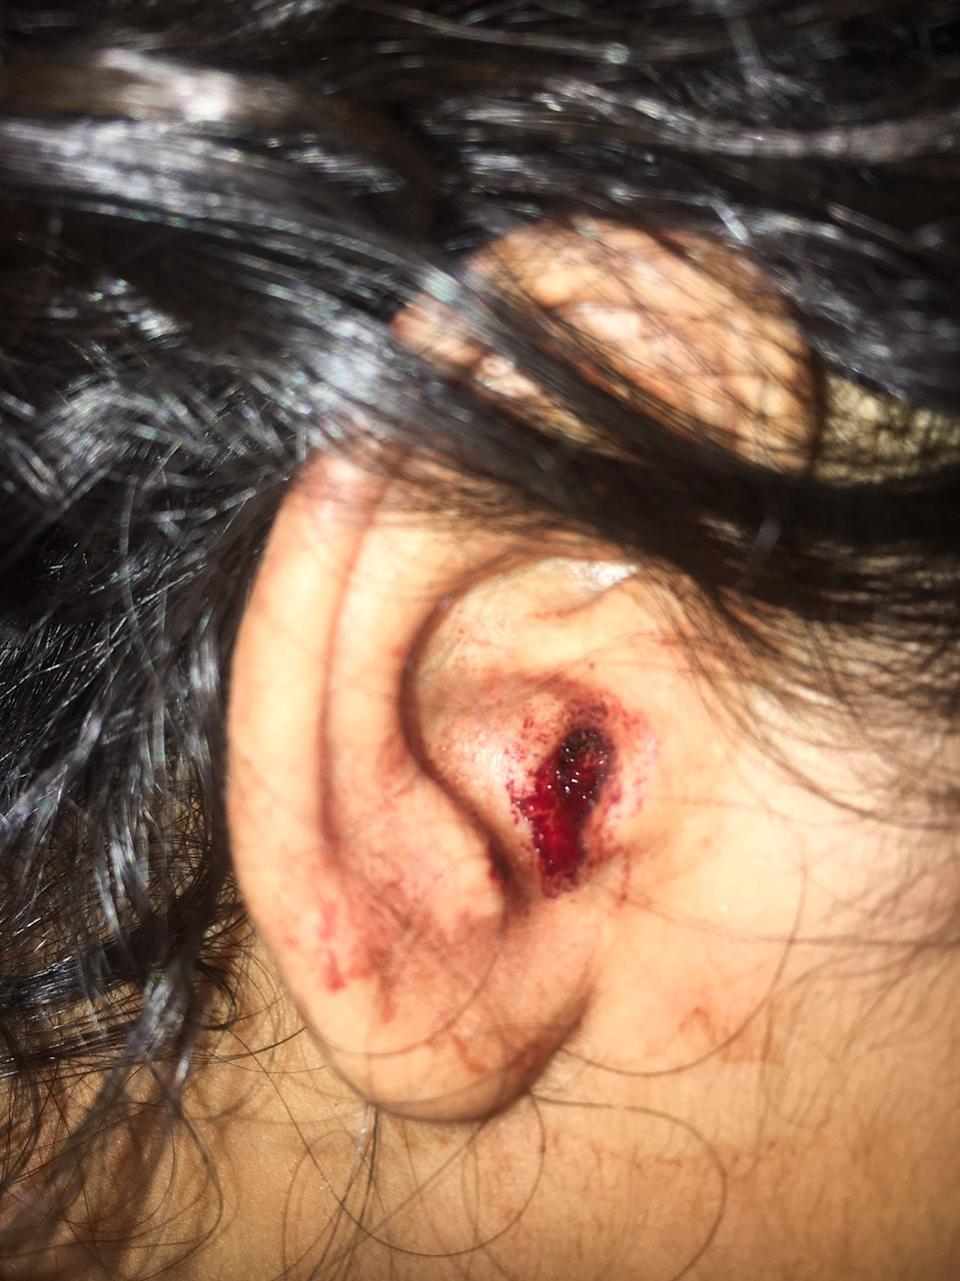 Pictured is Tha Rungkasatra's bloody ear.